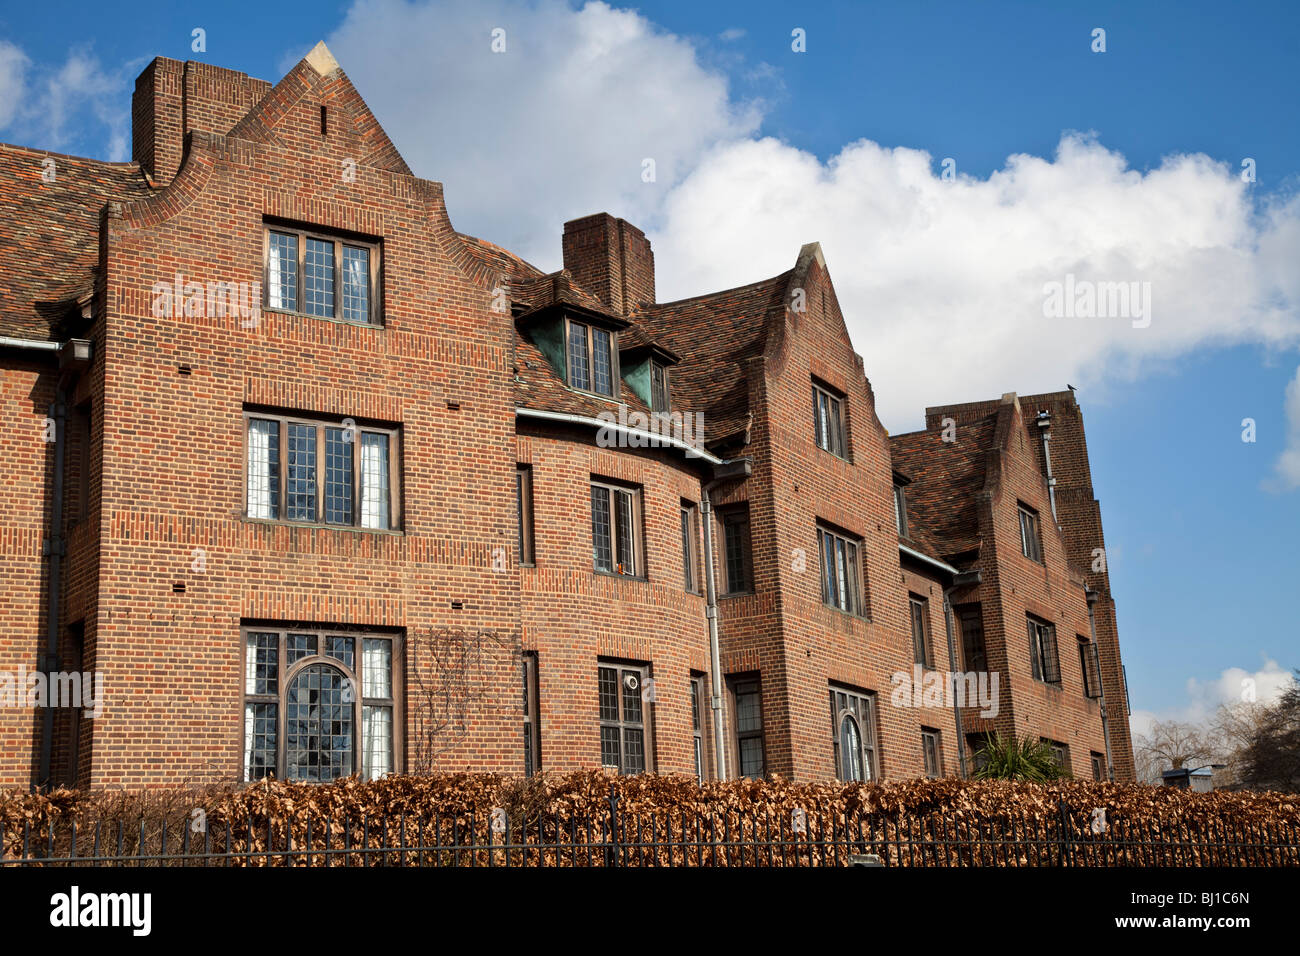 The Fisher Building, part of Queens College Cambridge - Stock Image